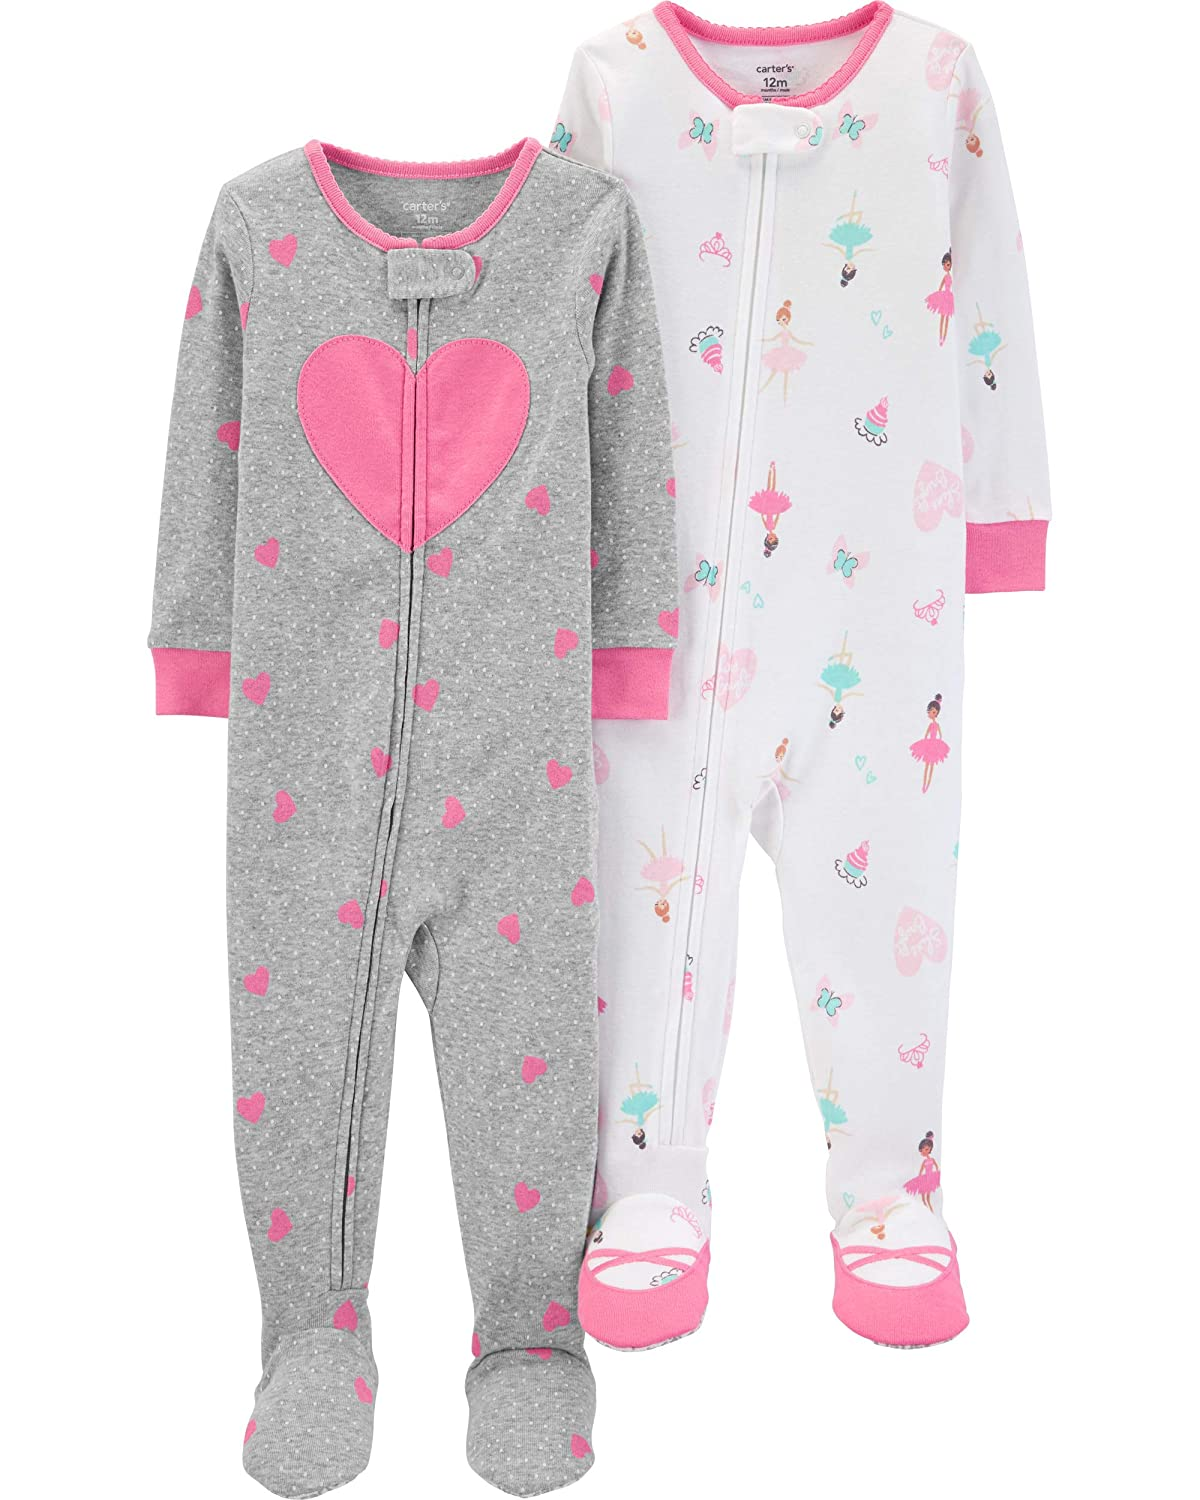 Carter's Baby Girls 2-Pack Cotton Footed Pajamas Carter' s